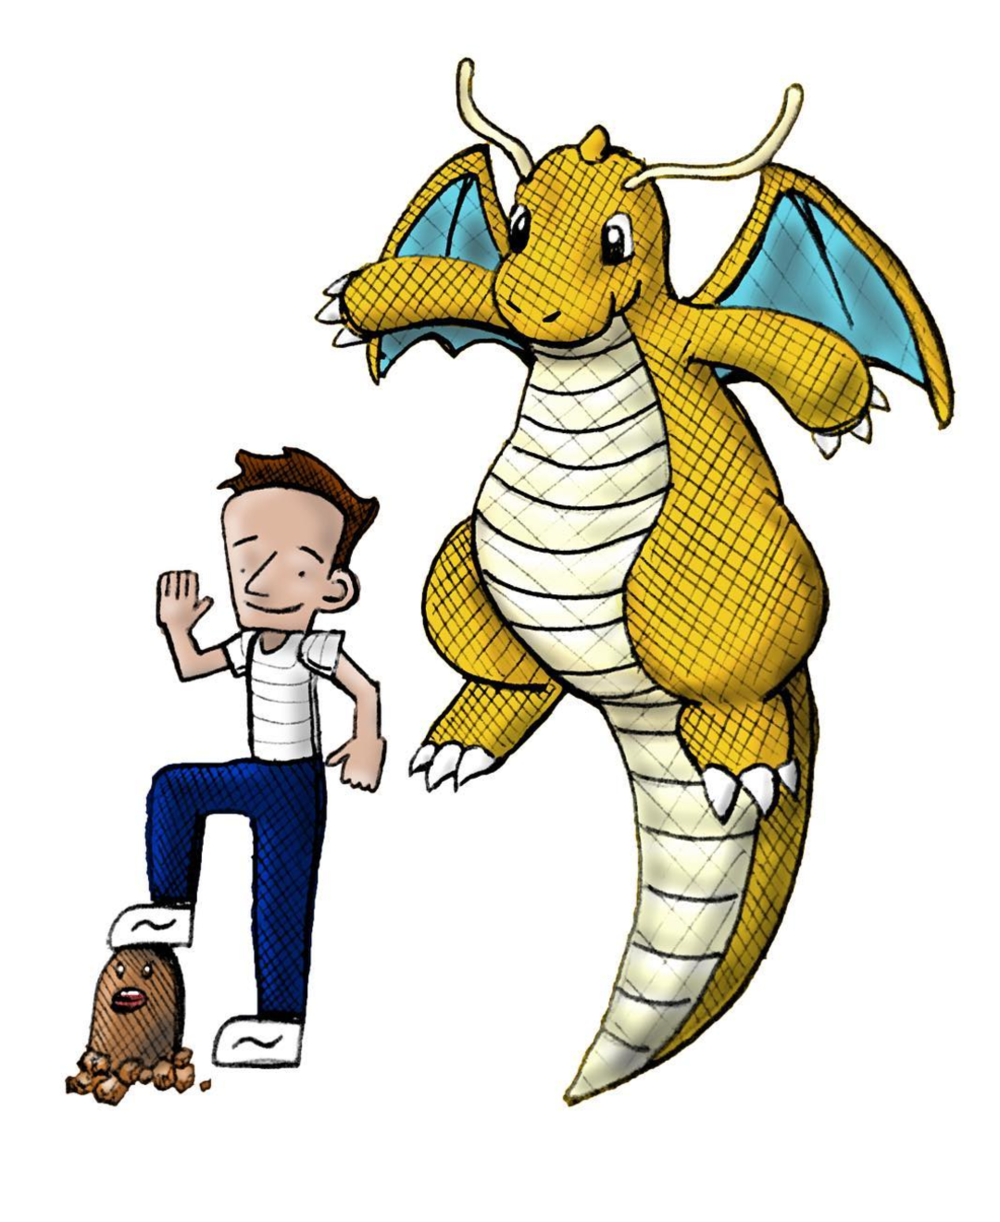 My height relative to a Diglett and a Dragonite